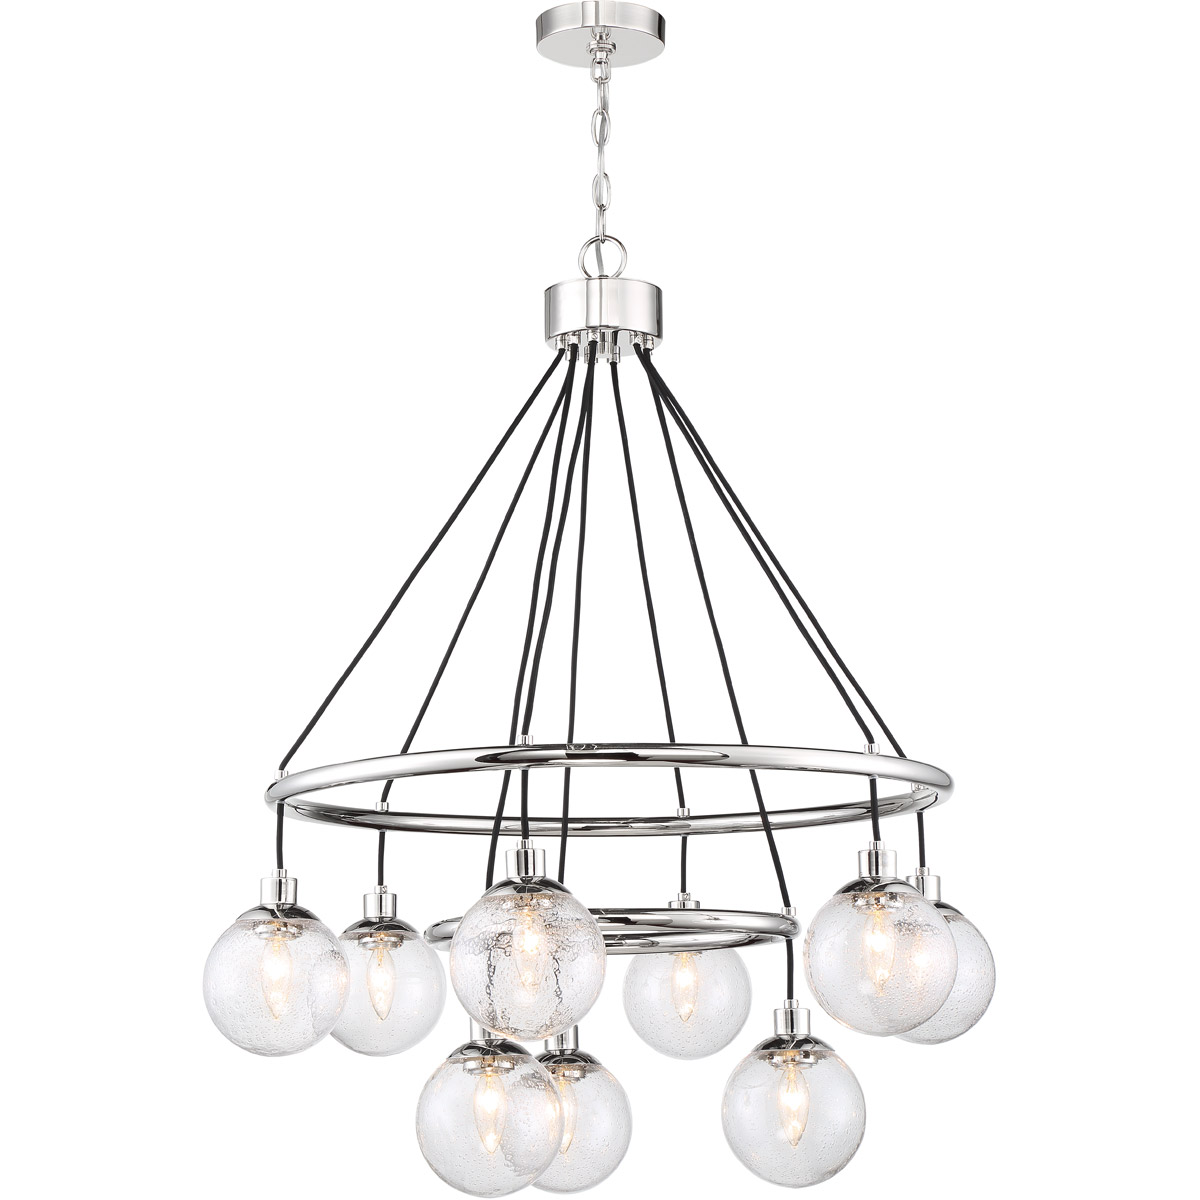 Craftmade 53329-CH Neighborhood Que 9 Light 31